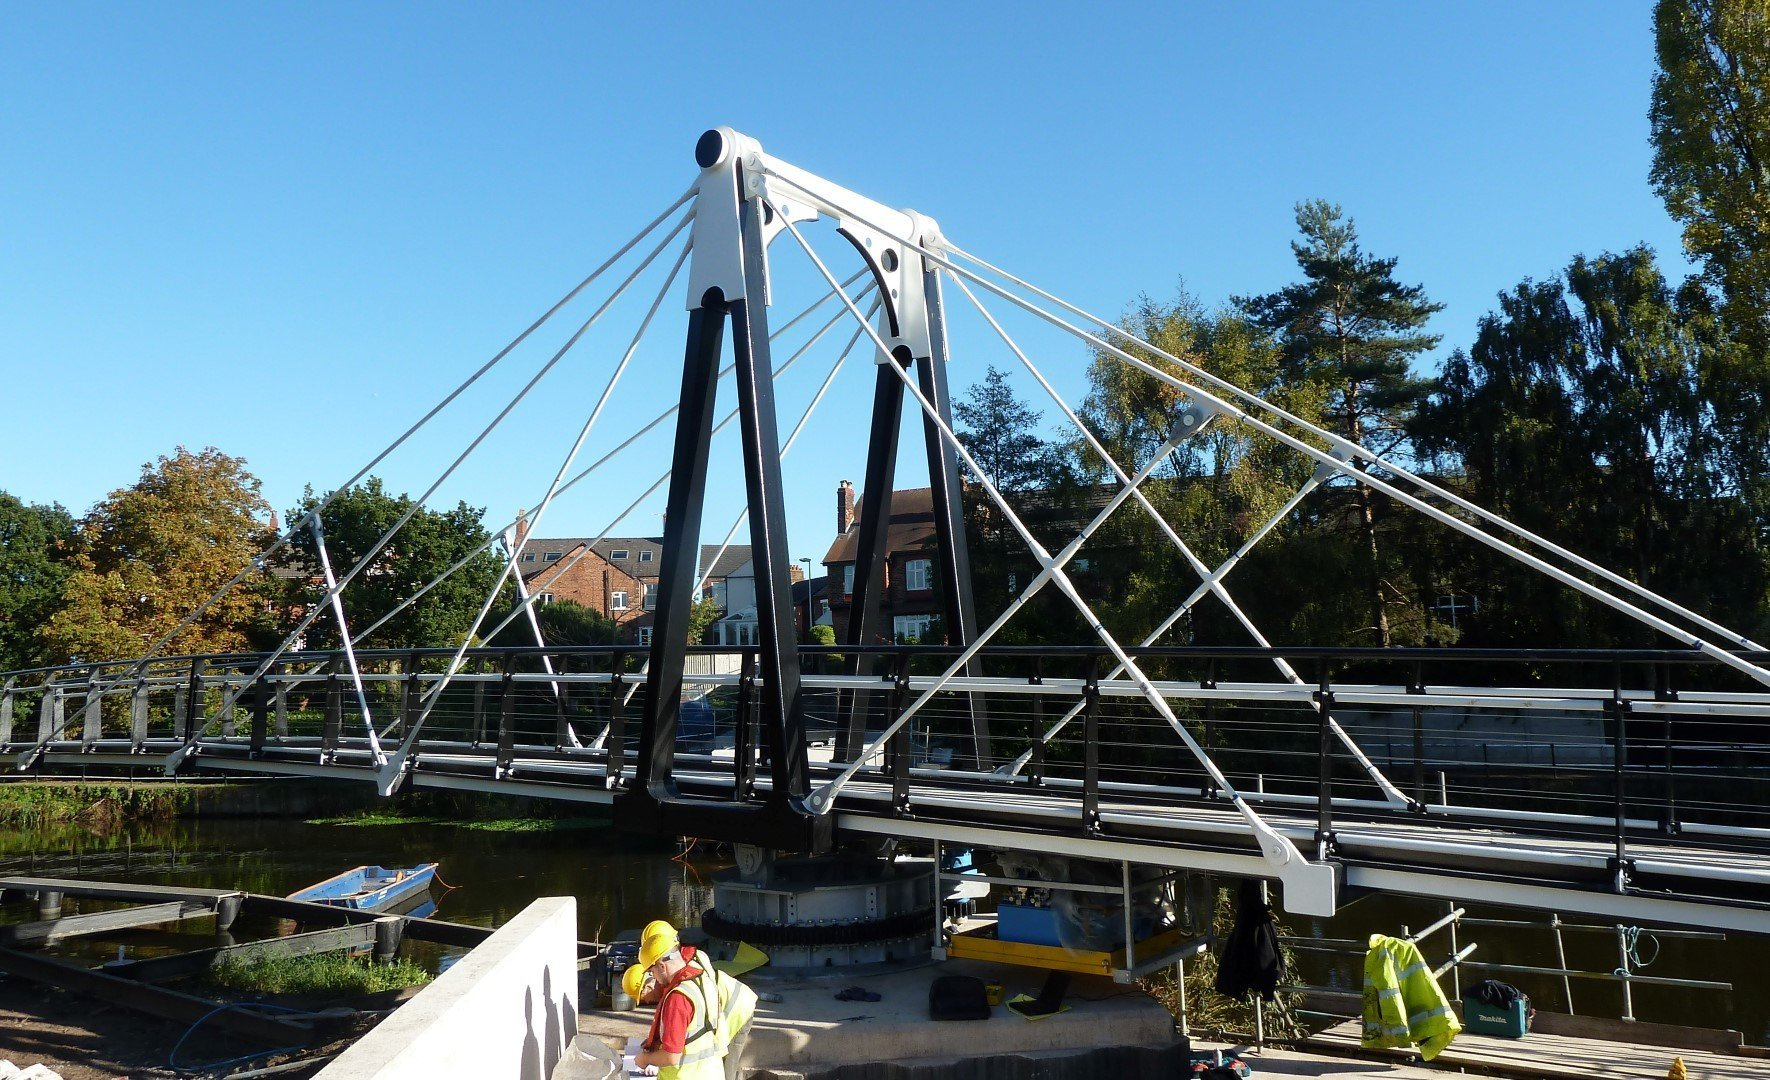 Riversdale Swing bridge